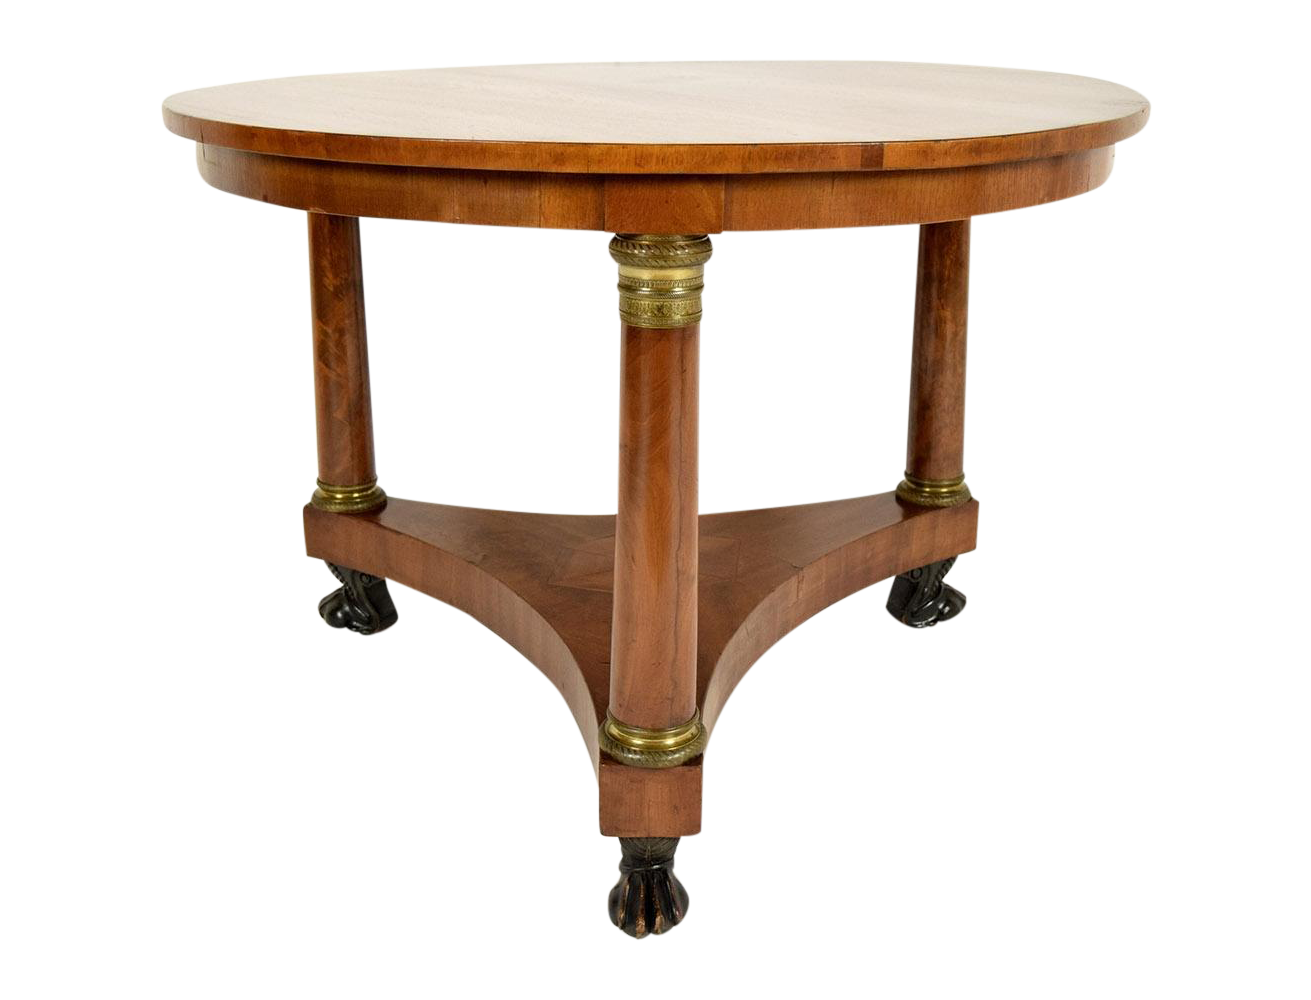 19th century french empire center table chairish for Table th center